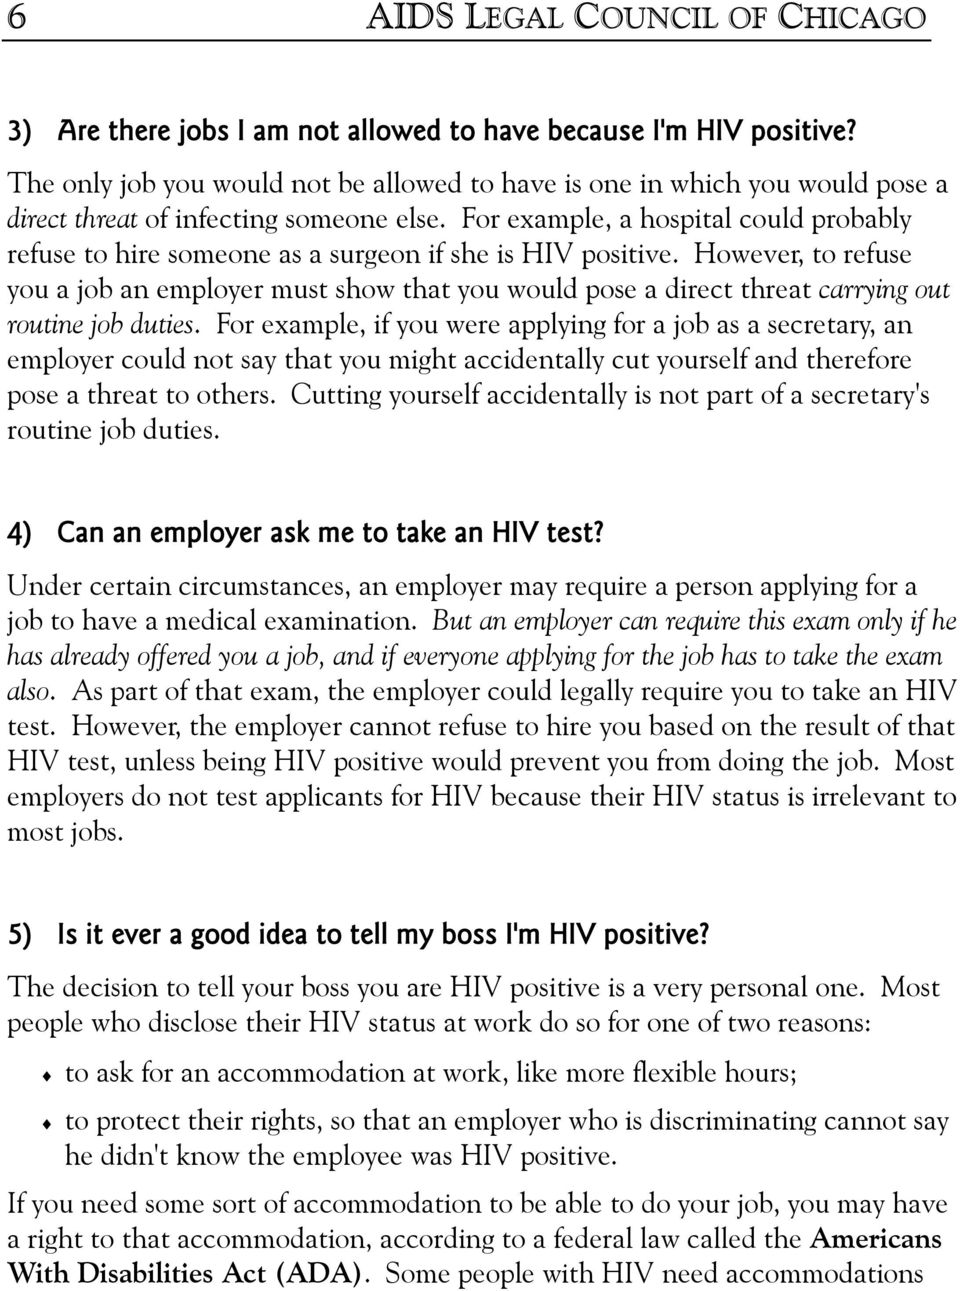 For example, a hospital could probably refuse to hire someone as a surgeon if she is HIV positive.